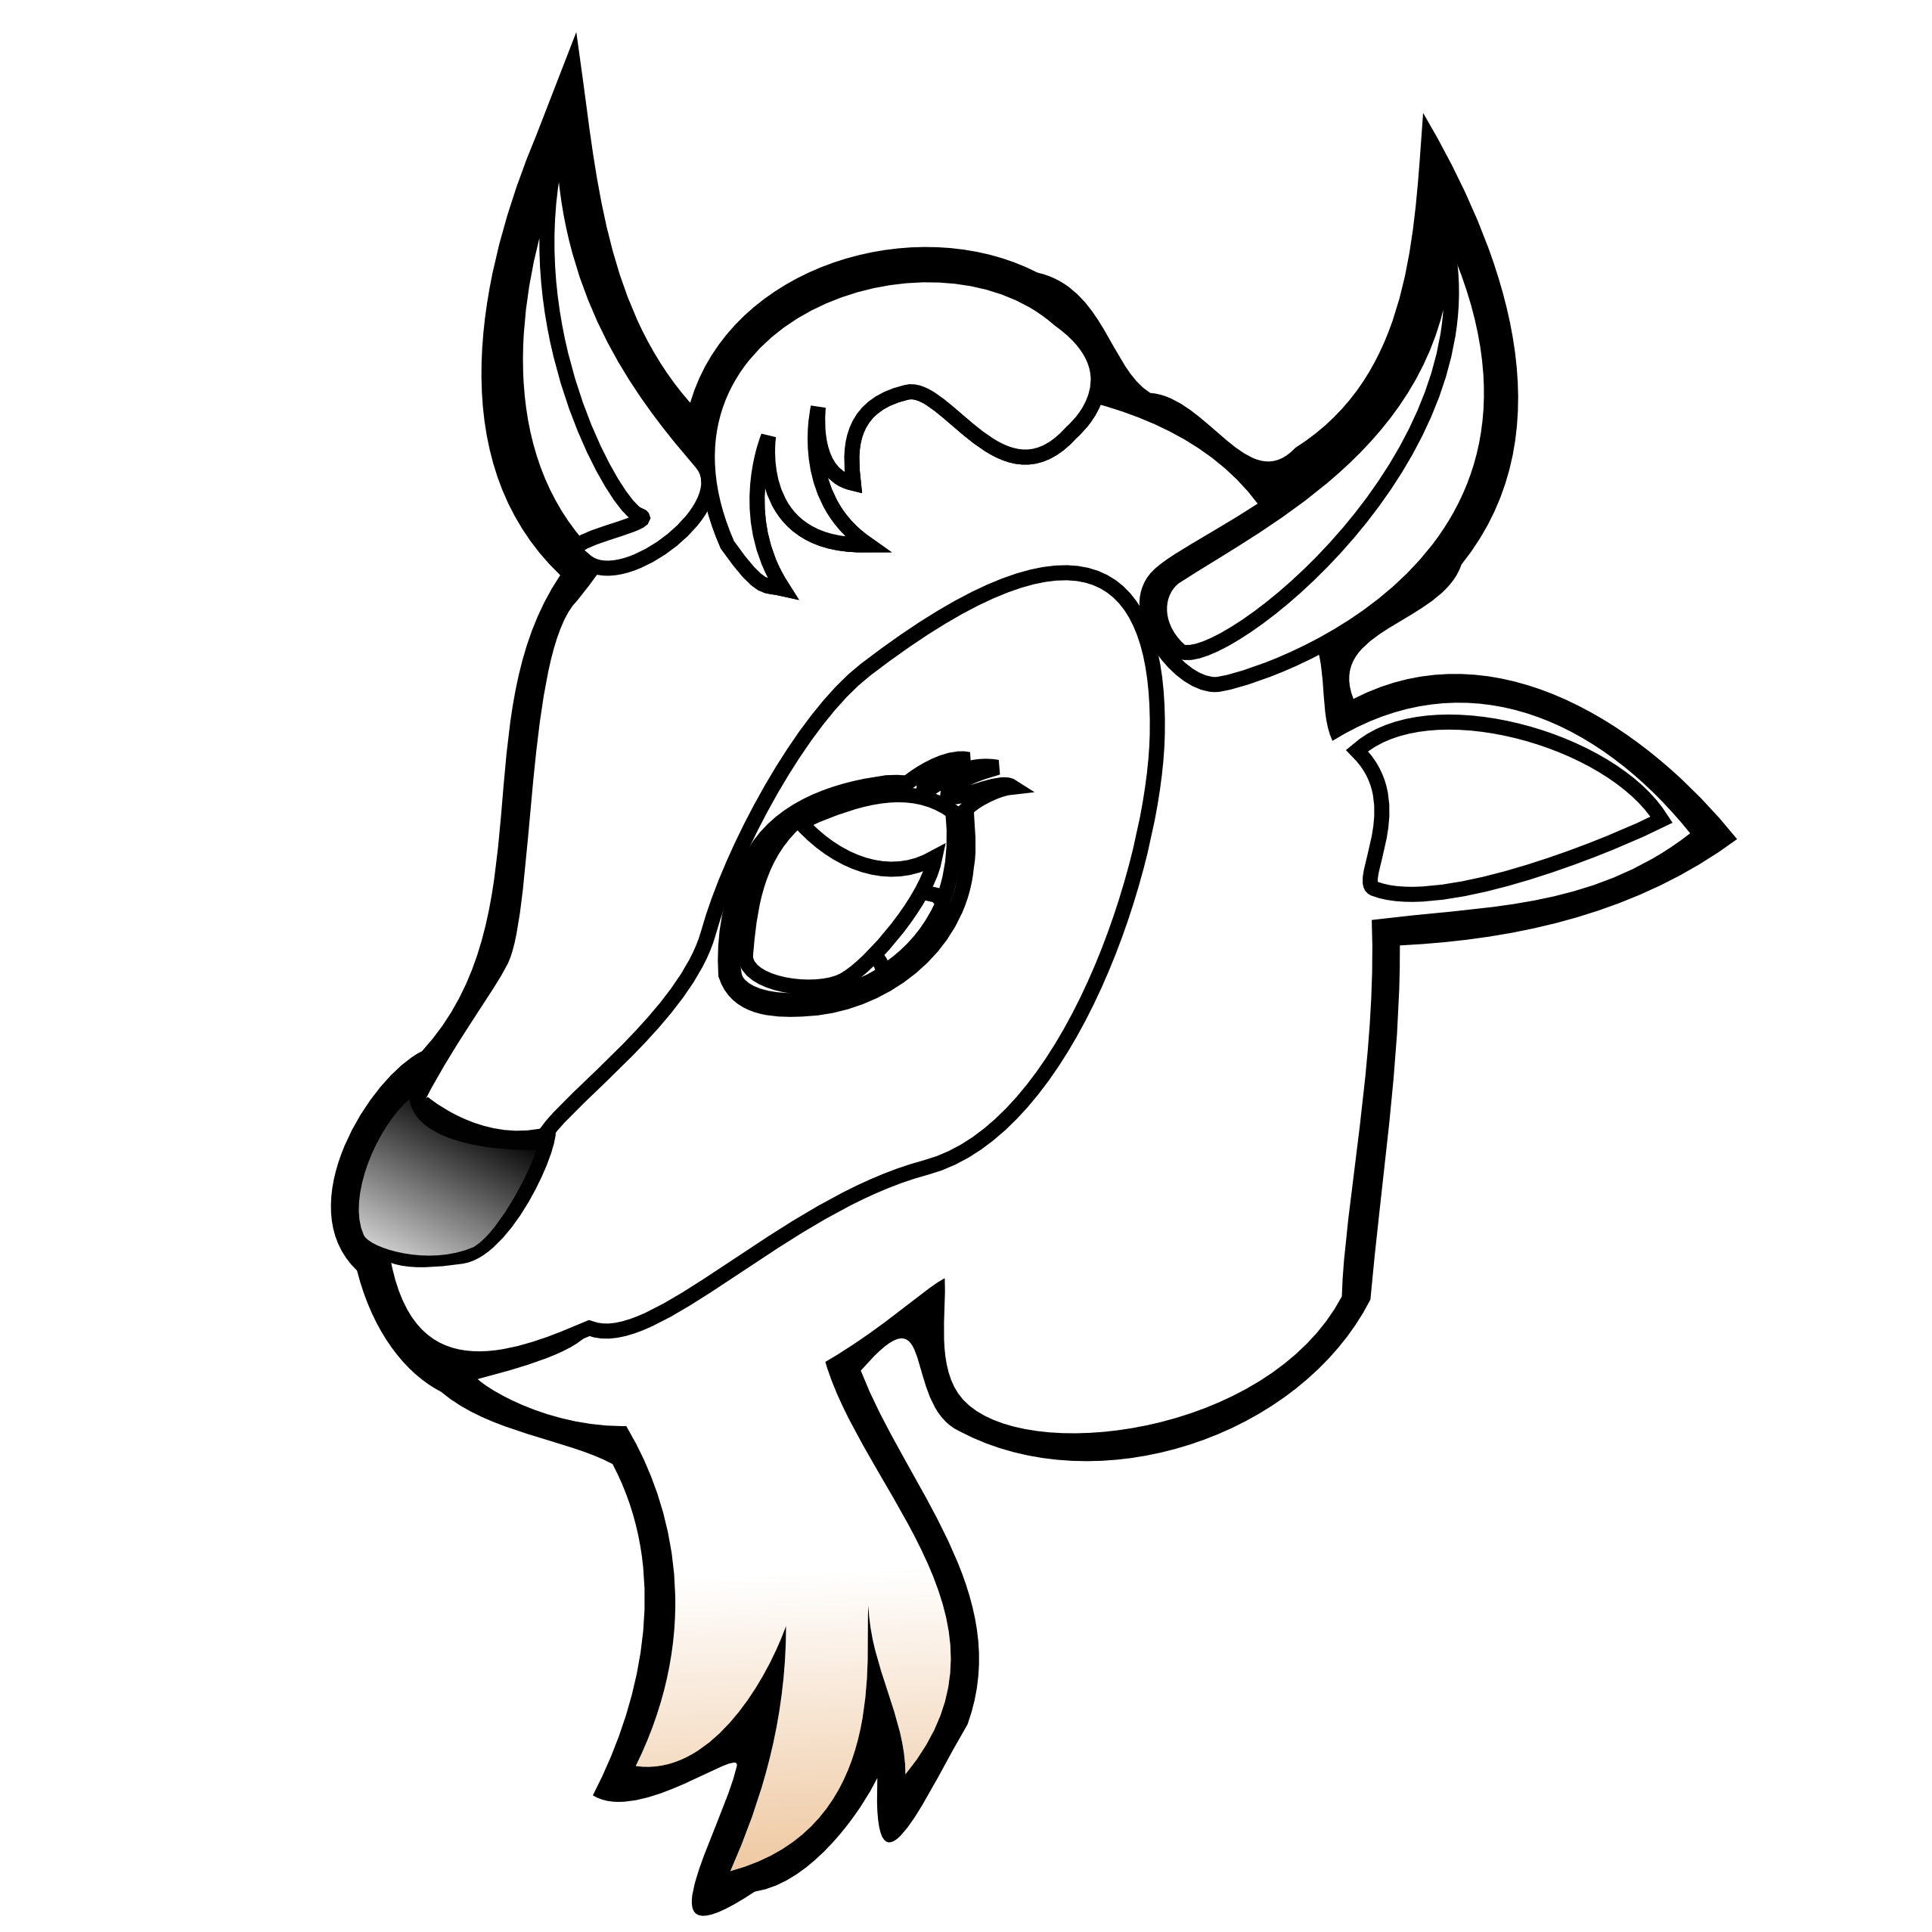 image freeuse Oatmeal black and white. Goat head clipart